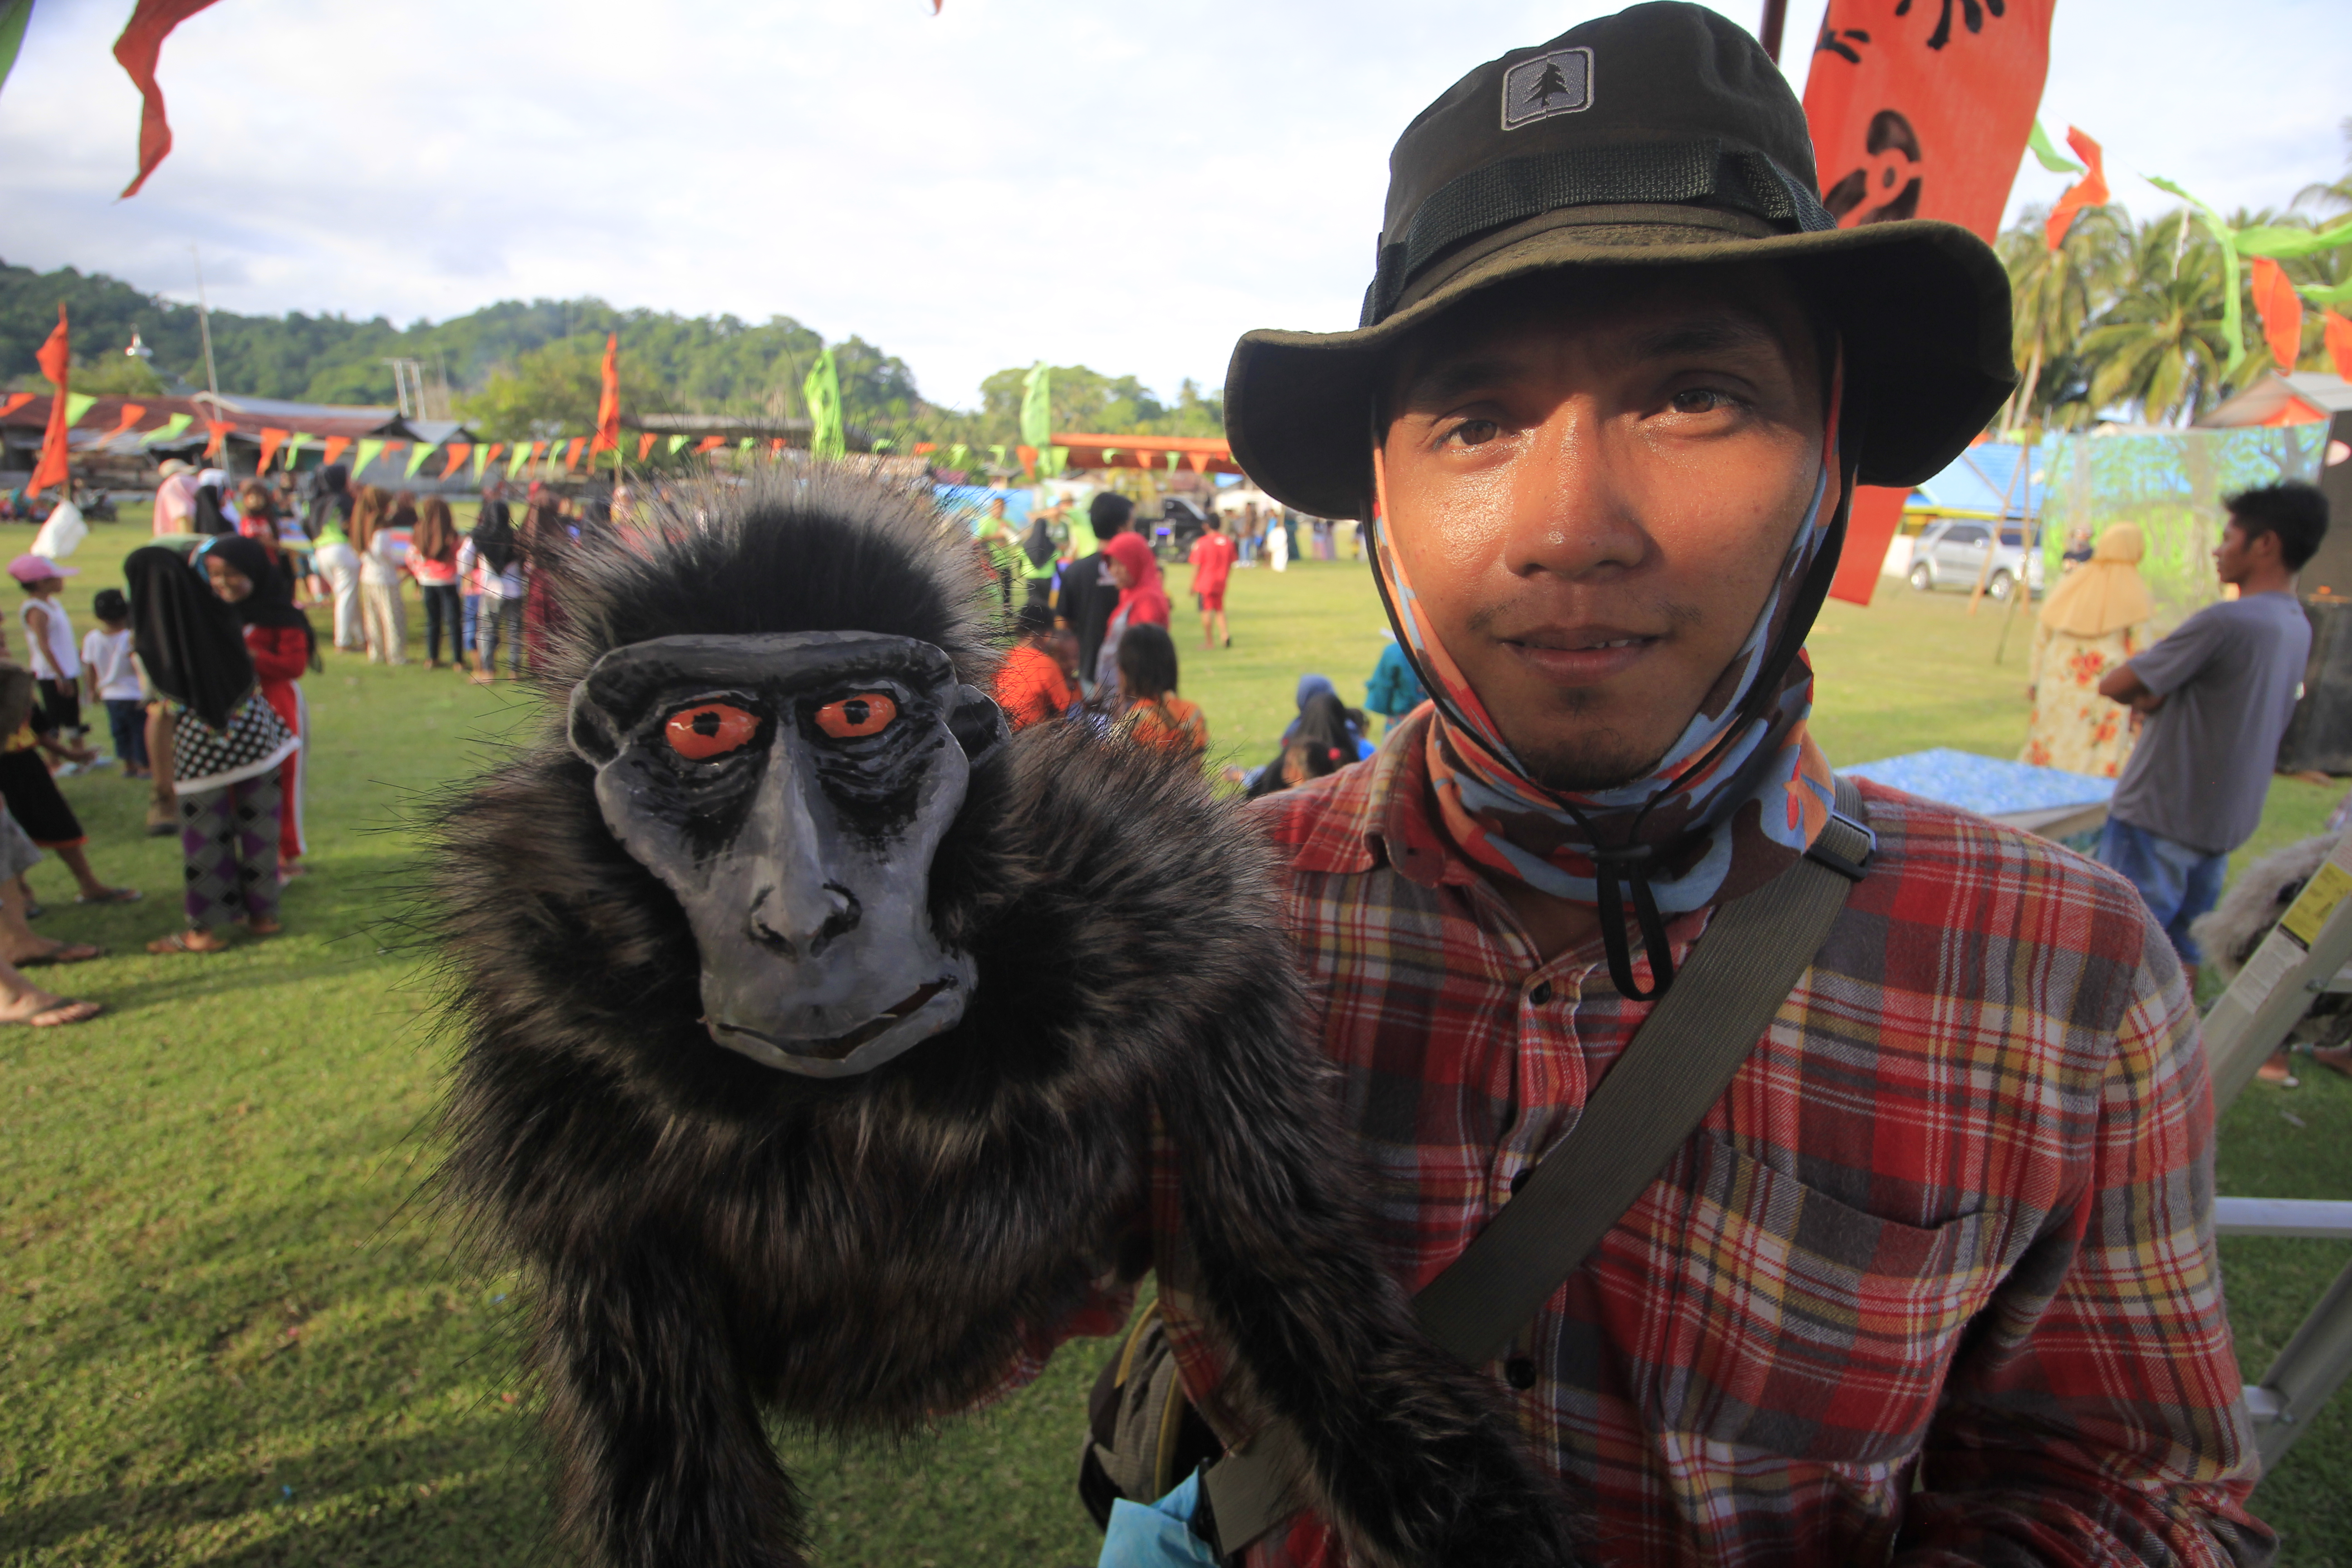 Festival Photos by Acca and Cliff Rice